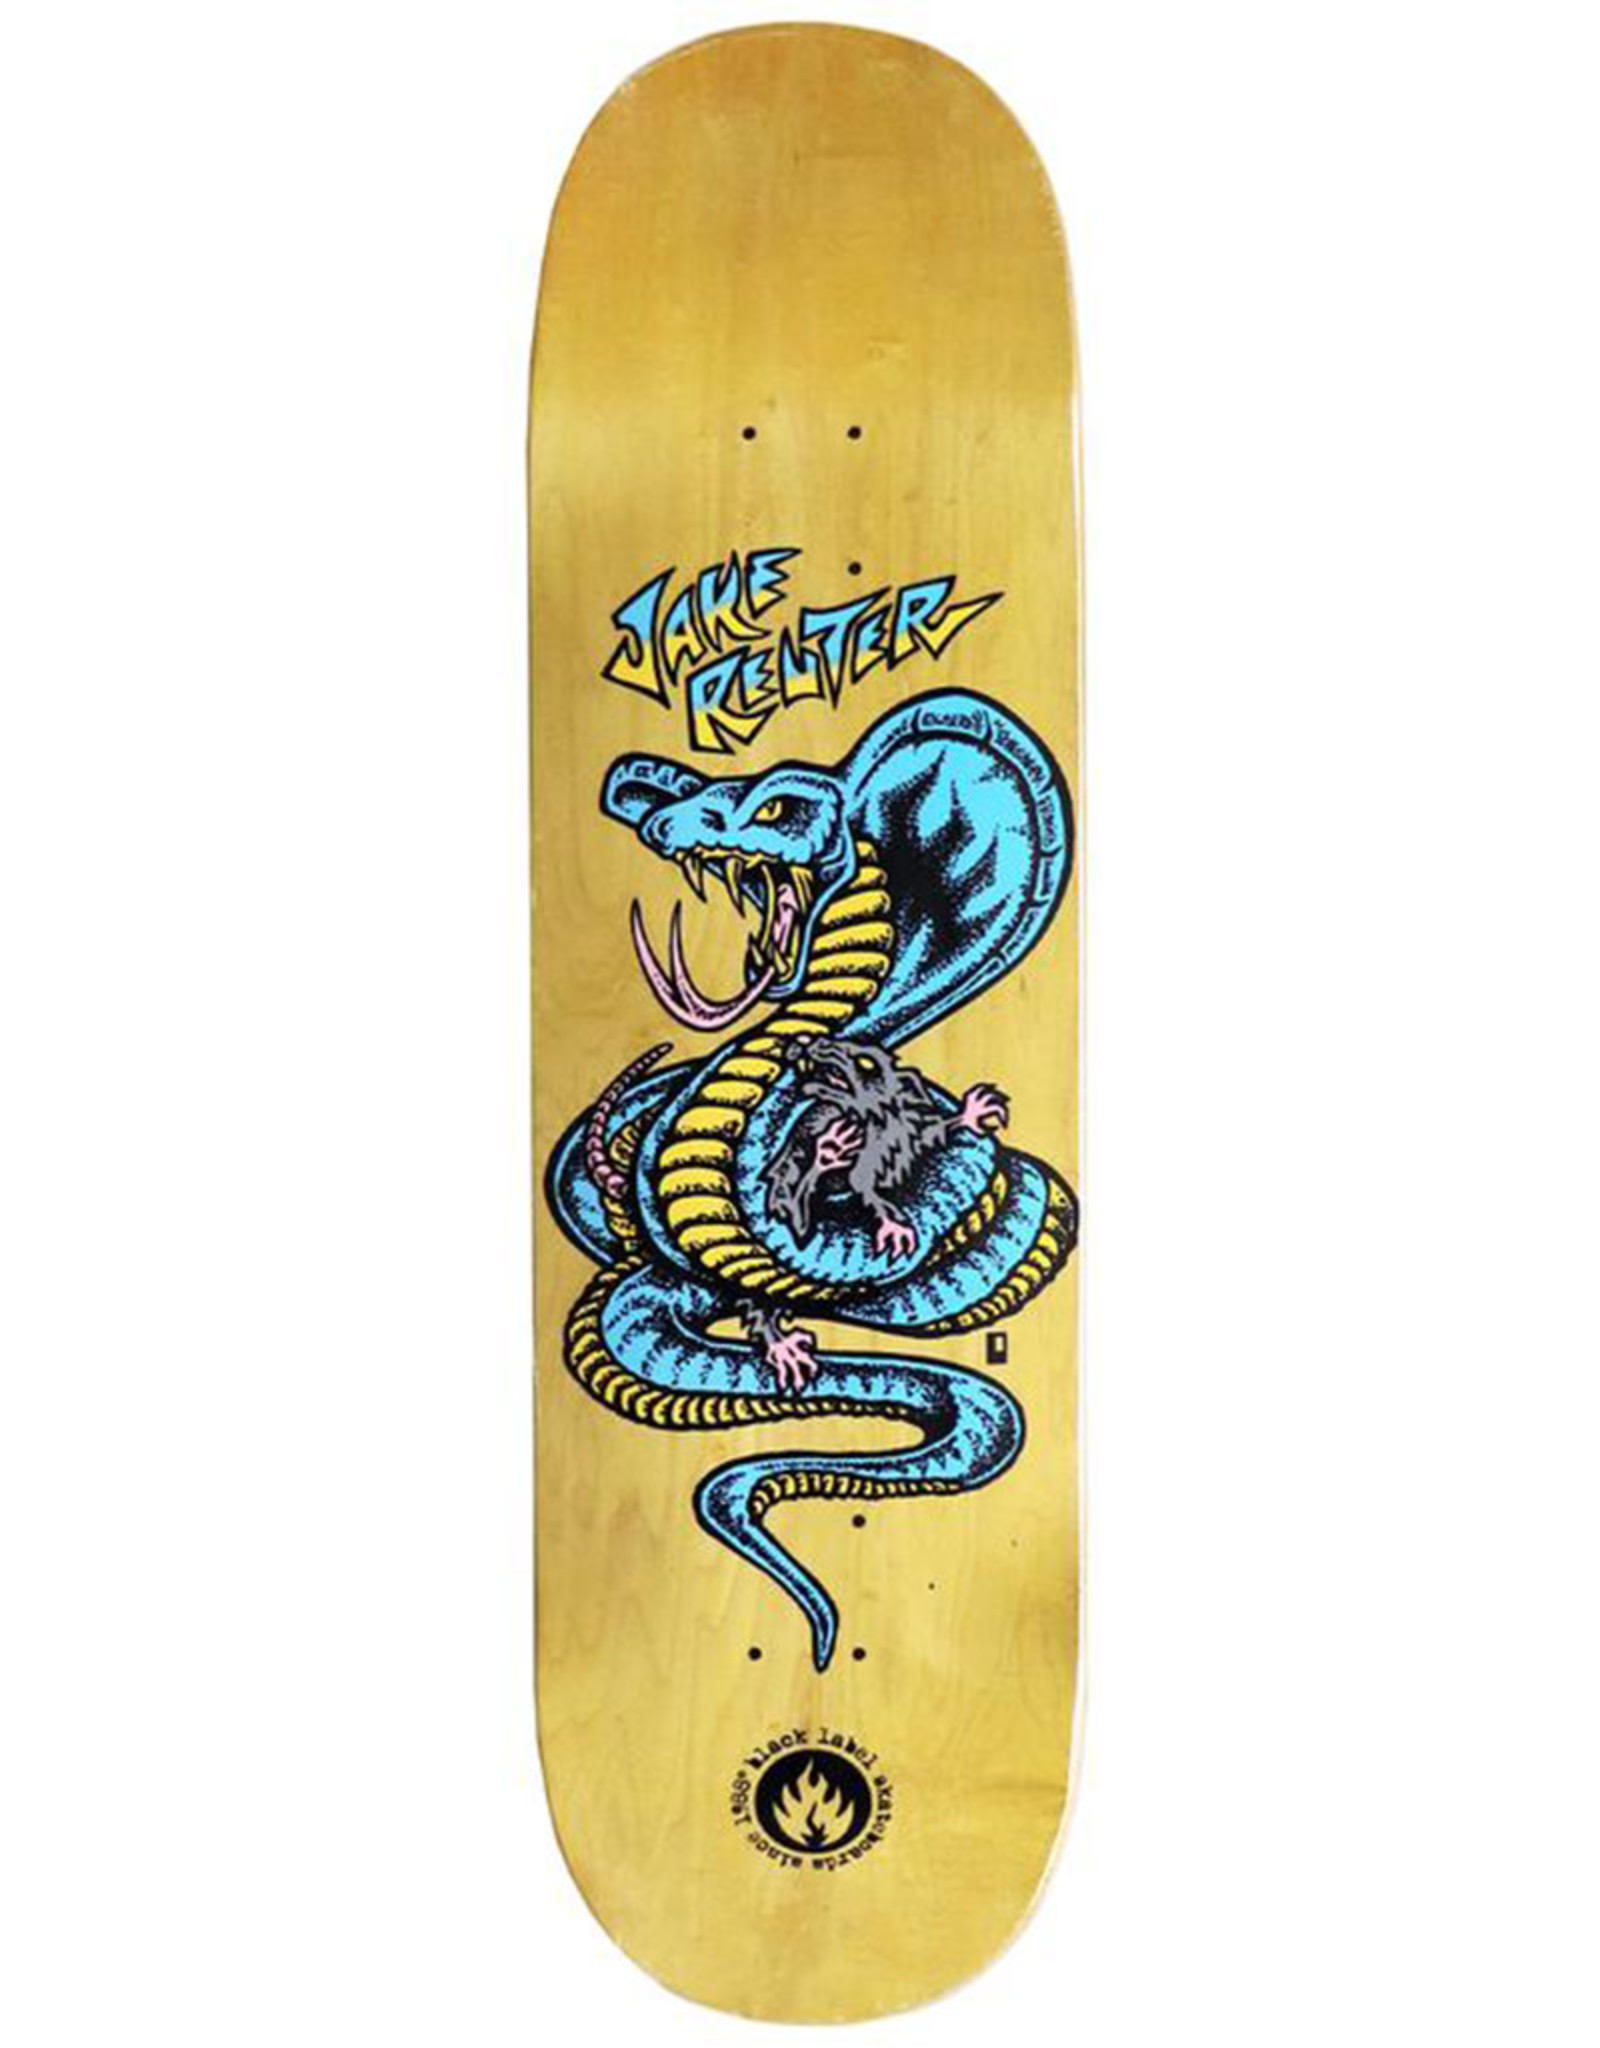 Black Label Black Label Deck Jake Reuter Snake And Rat (8.75)